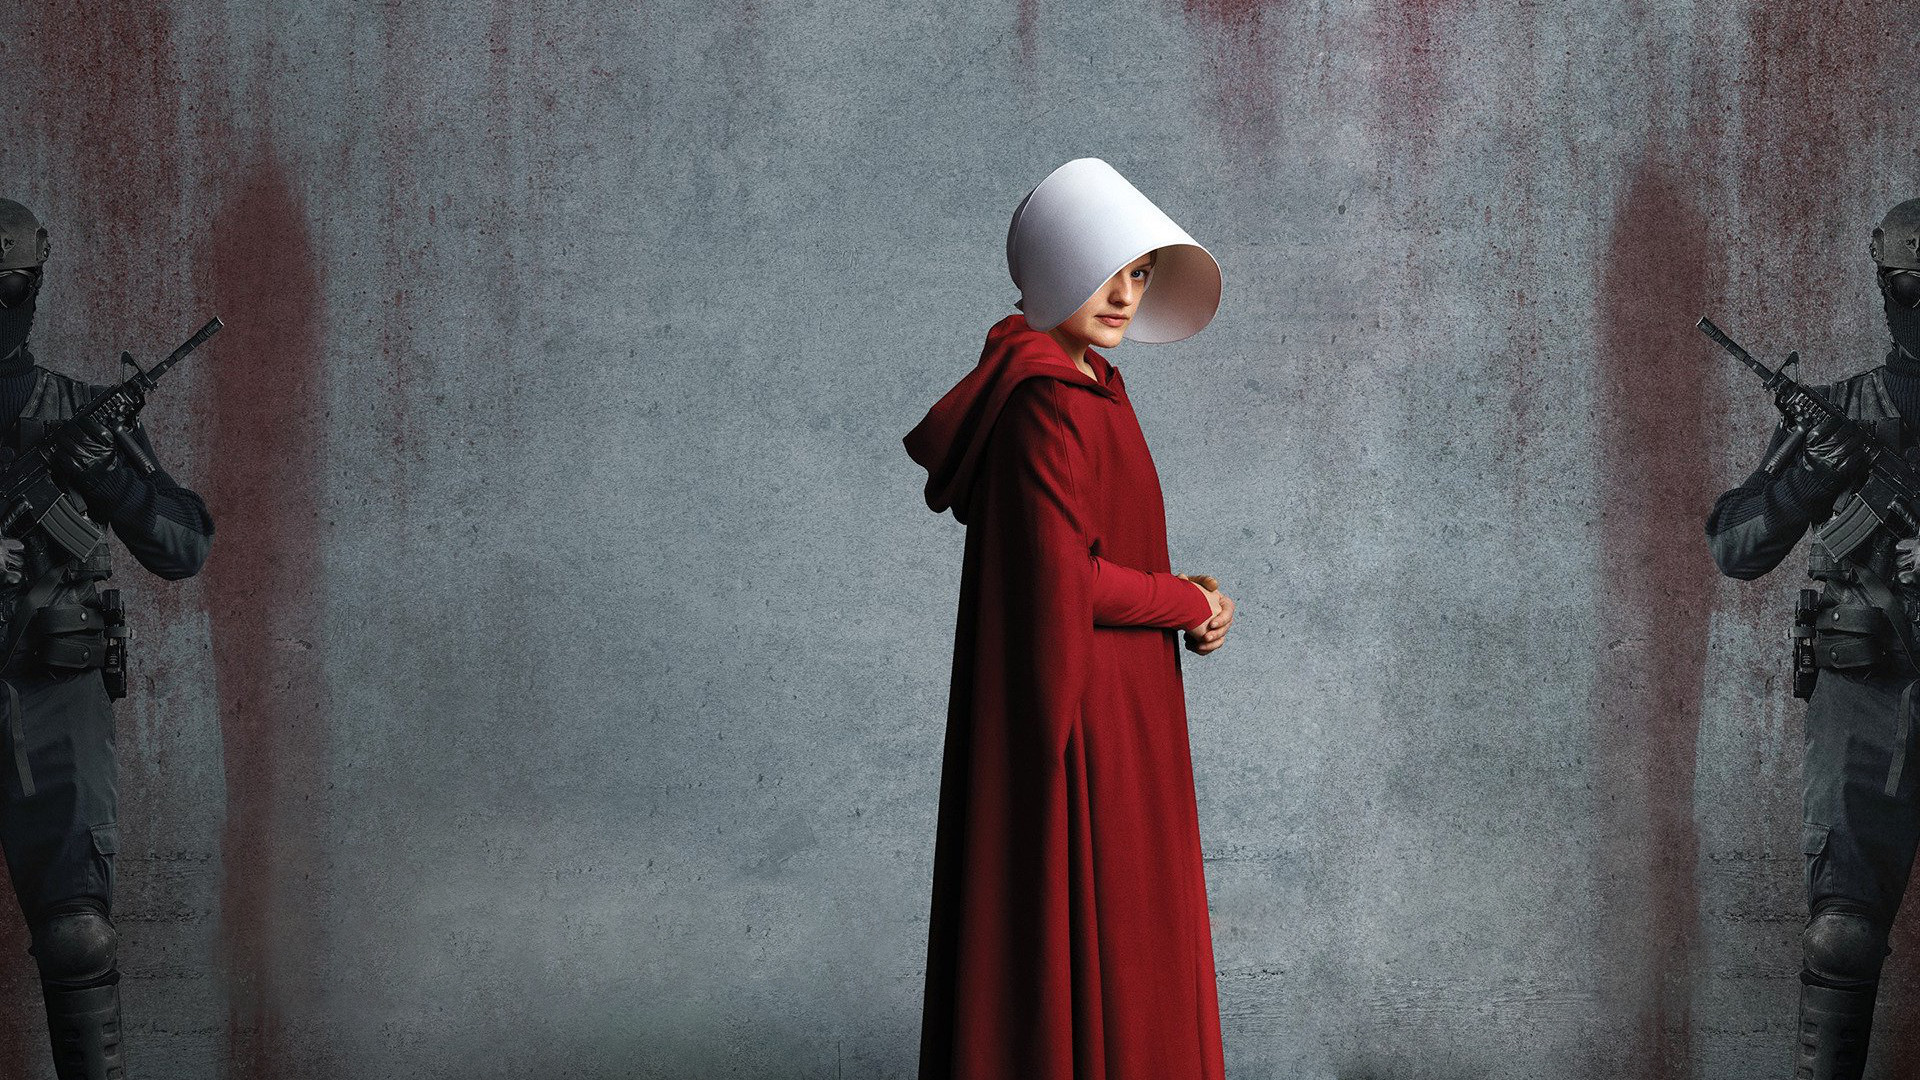 The Handmaid's Tale 2 is going to be released